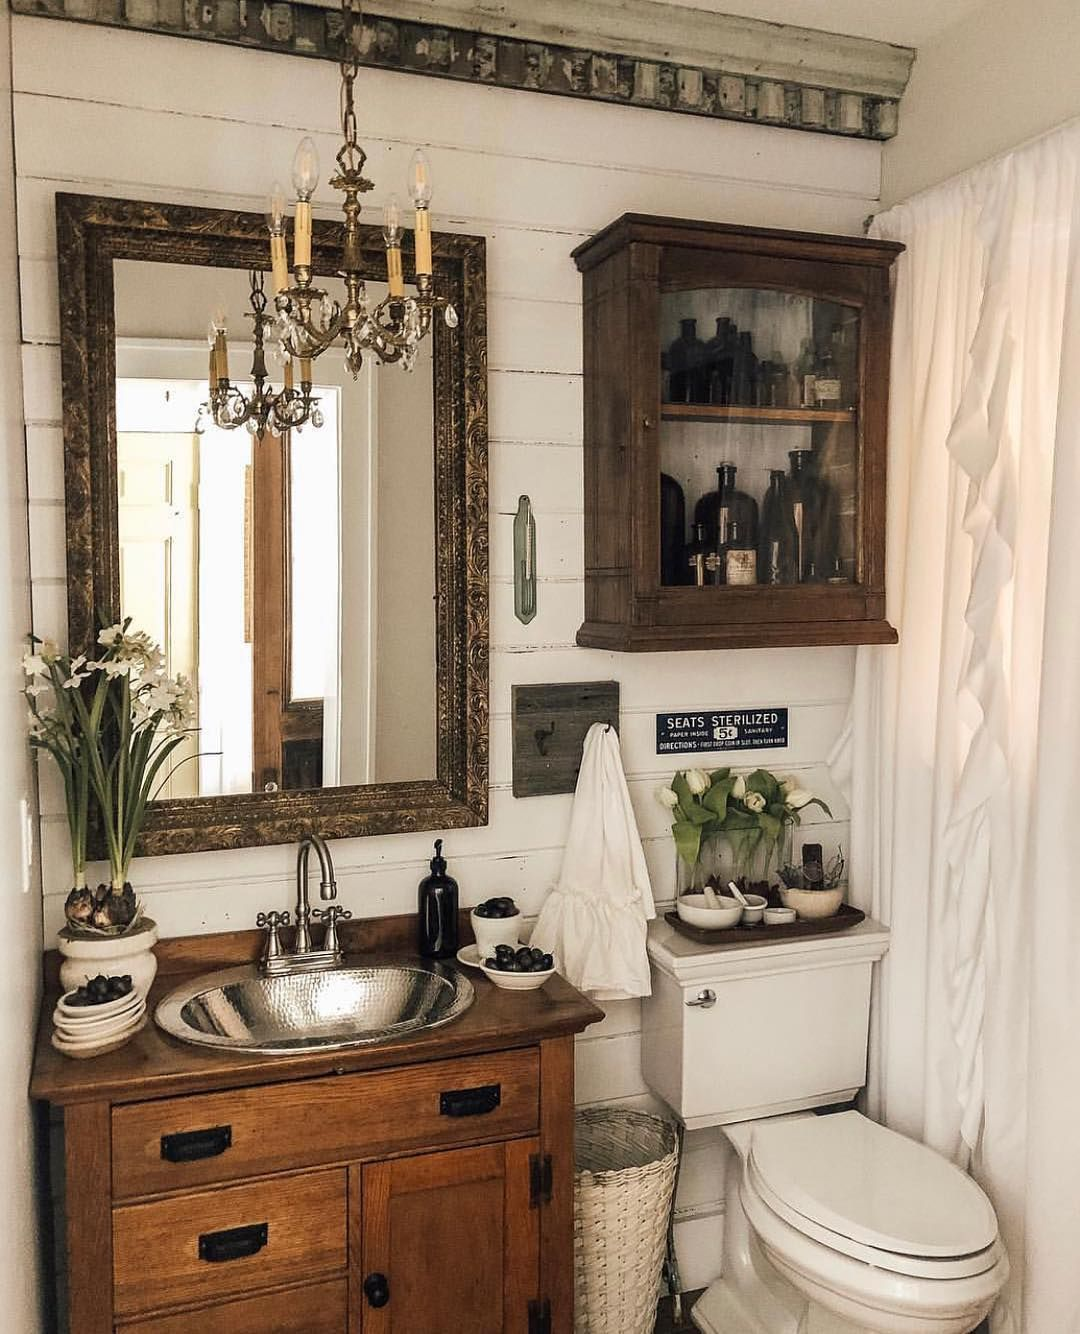 Karan Designs By Karan On Instagram Okay Shall We Talk Powder Rooms For A Minute I Love Chippy And Thrifted And I Cottage Bathroom Bathroom Design Small